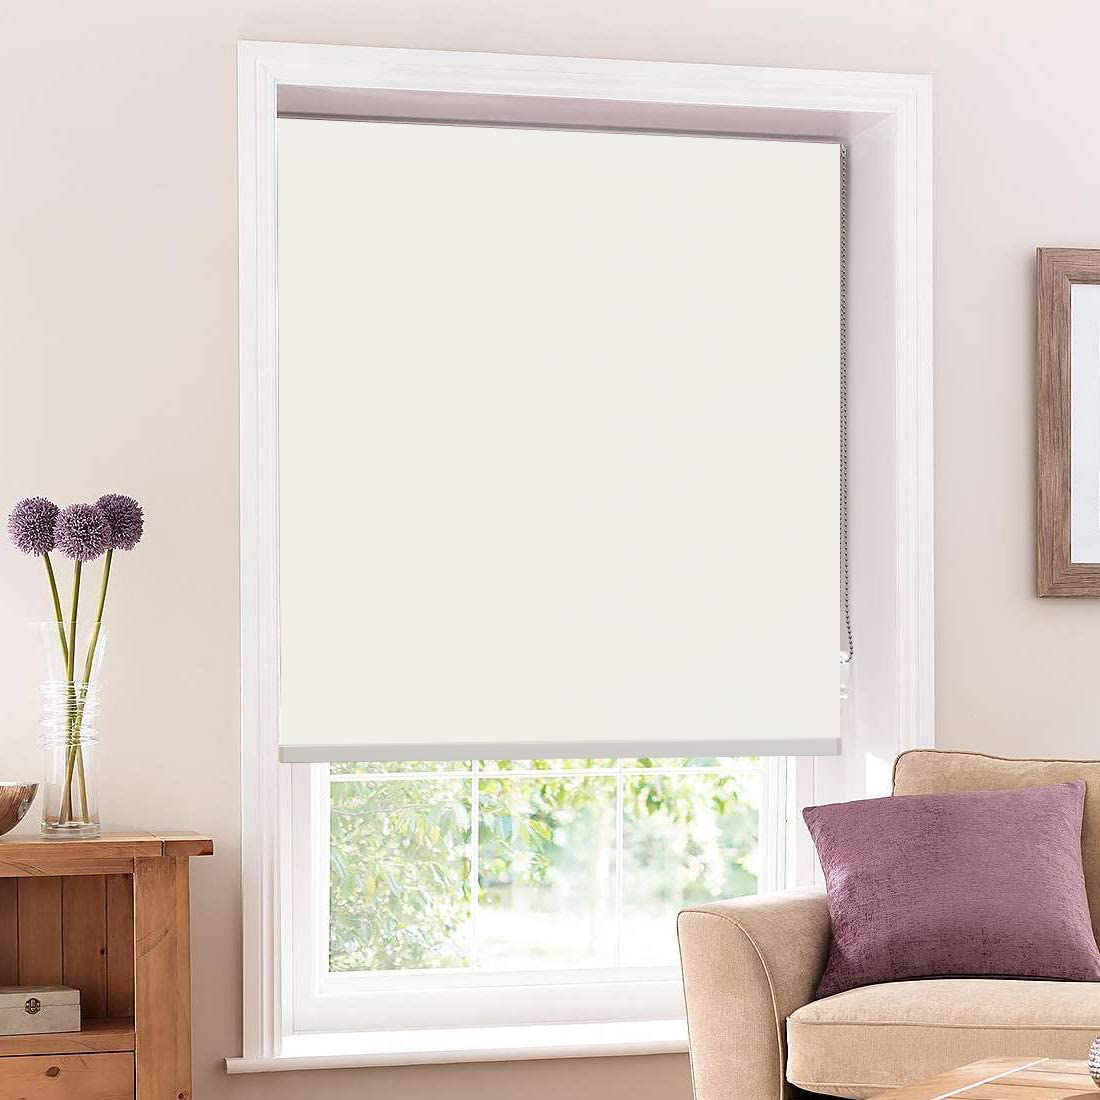 Keego Room Darkening Roller Shades-Window Black Out Shades-Thermal Blinds with Back in White to Anti-UV White 100 Blackout,W34xH60 Inch